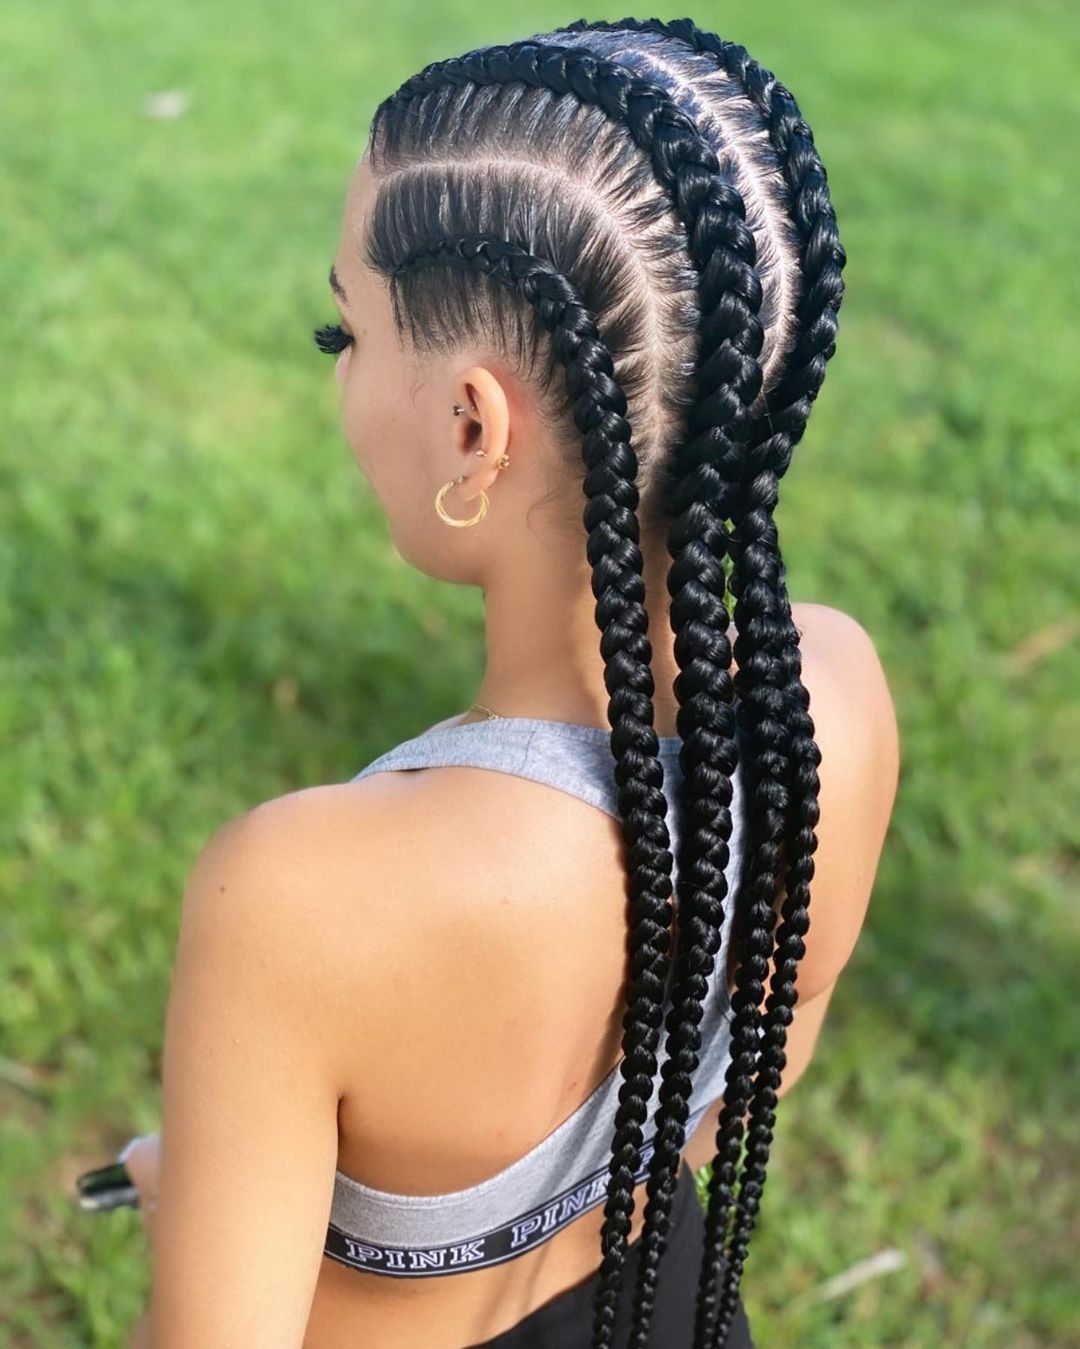 Synthetic Lace Wig Braided Wigs Natural Dark 32 Inches Black Burgundy Wig For Black Women American African Wig Wholesale Cheap enlarge